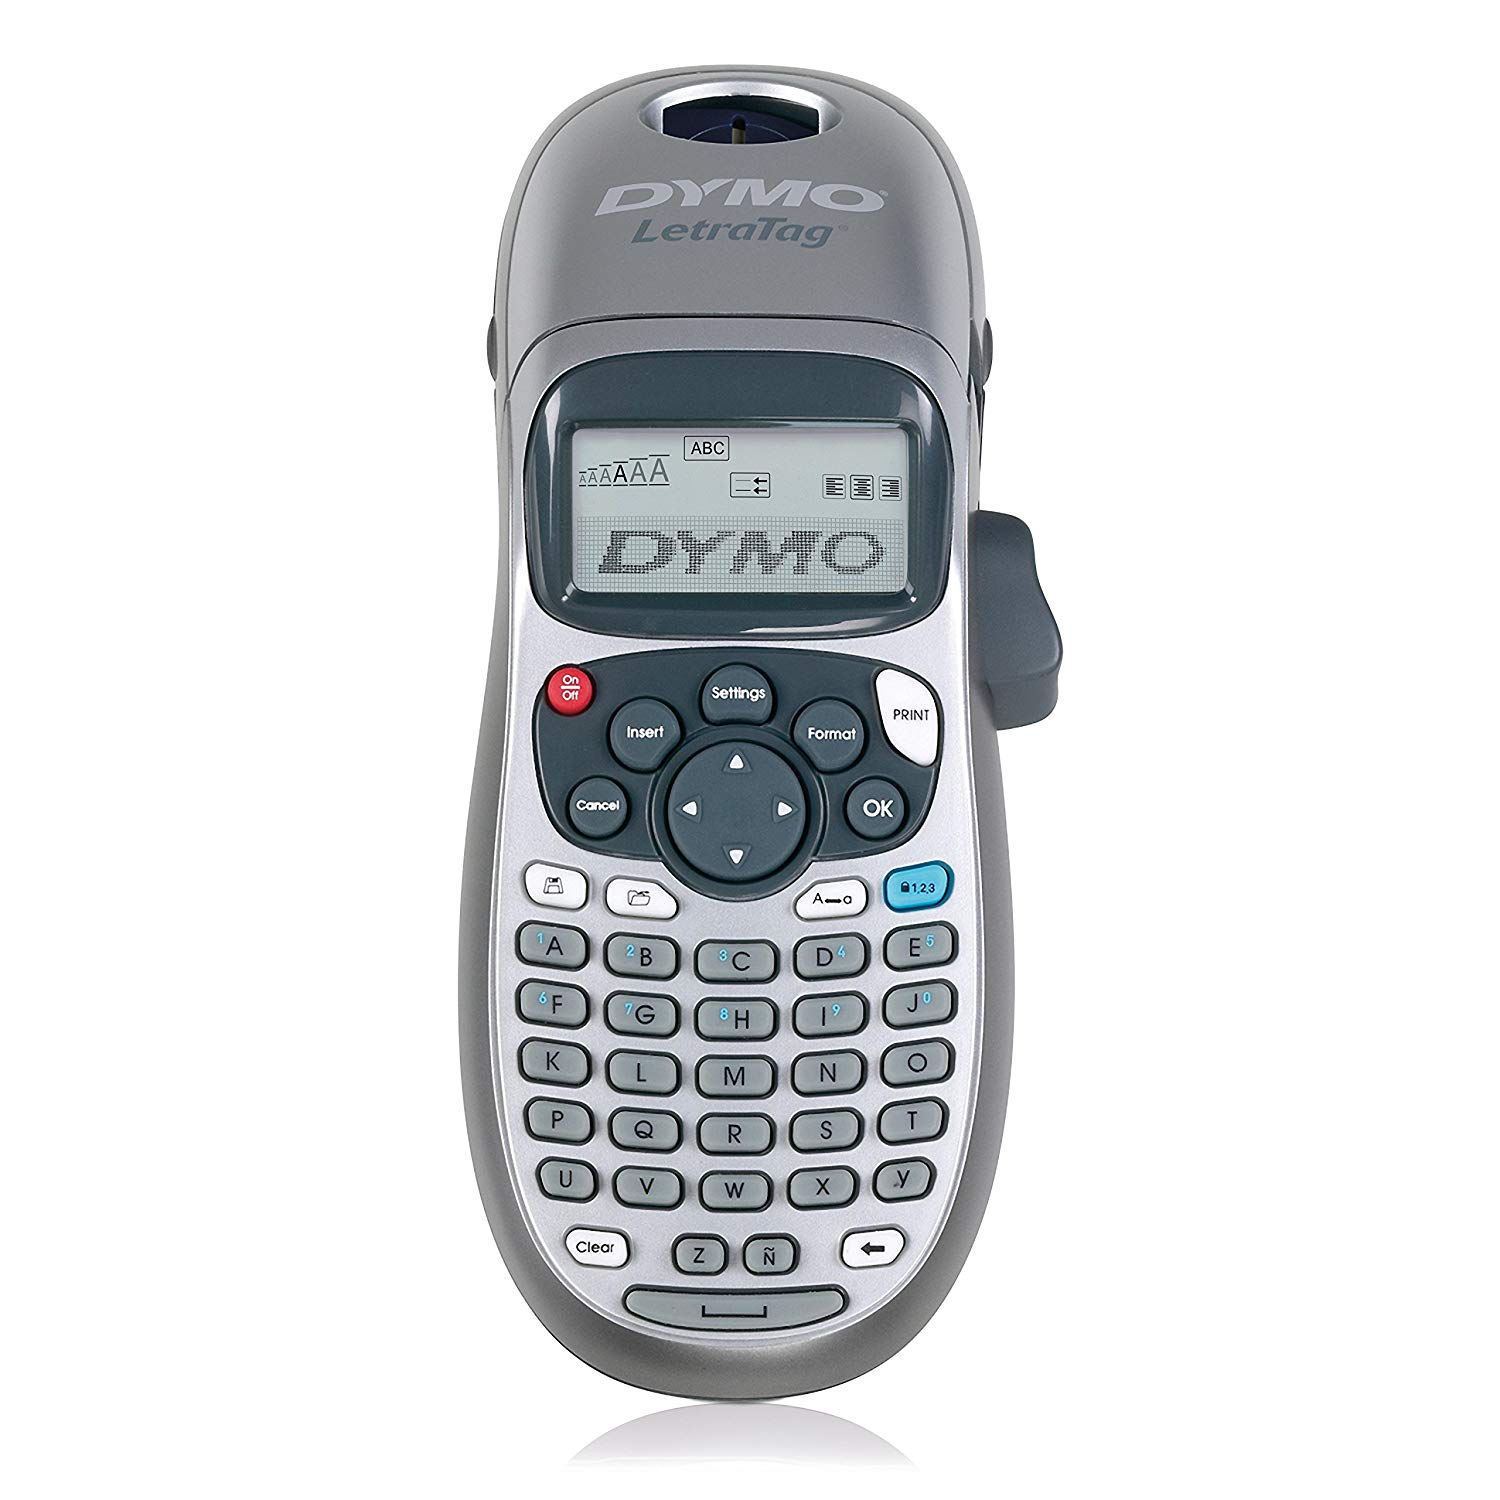 DYMO Handheld Label Maker with 2 Line Printing and 3 Language Option for LT Series Label Tapes 6